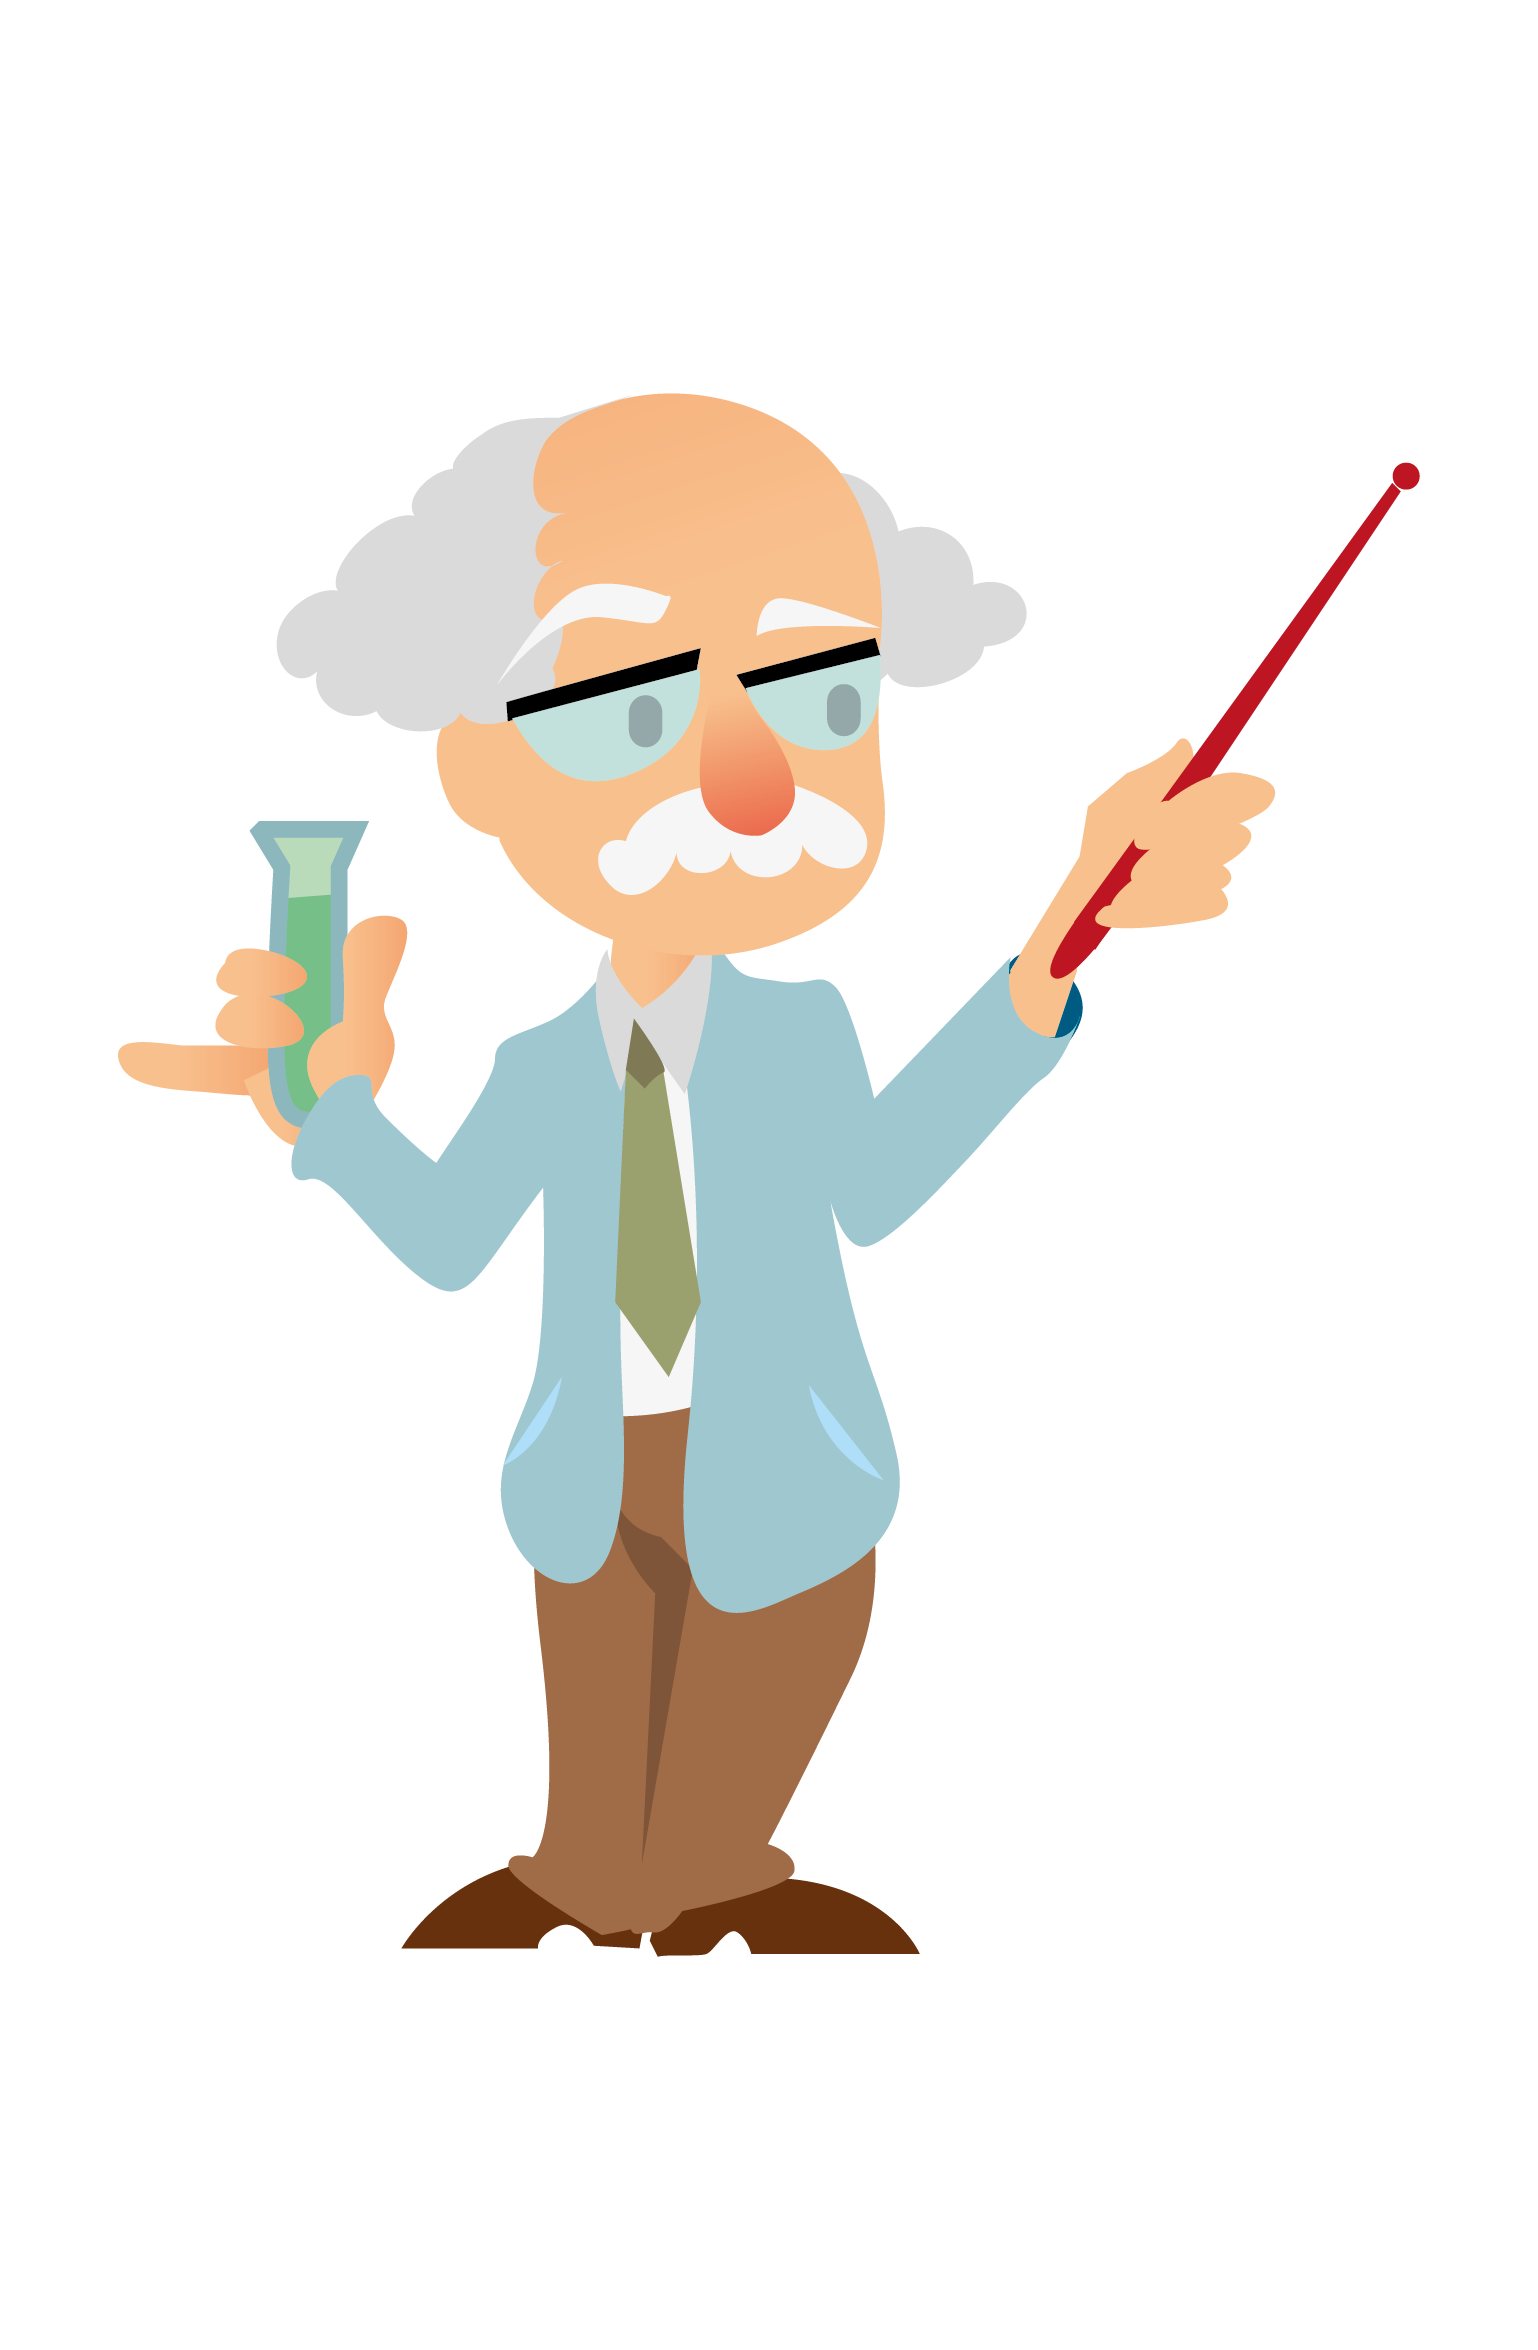 Log clipart history professor. File png wikimedia commons